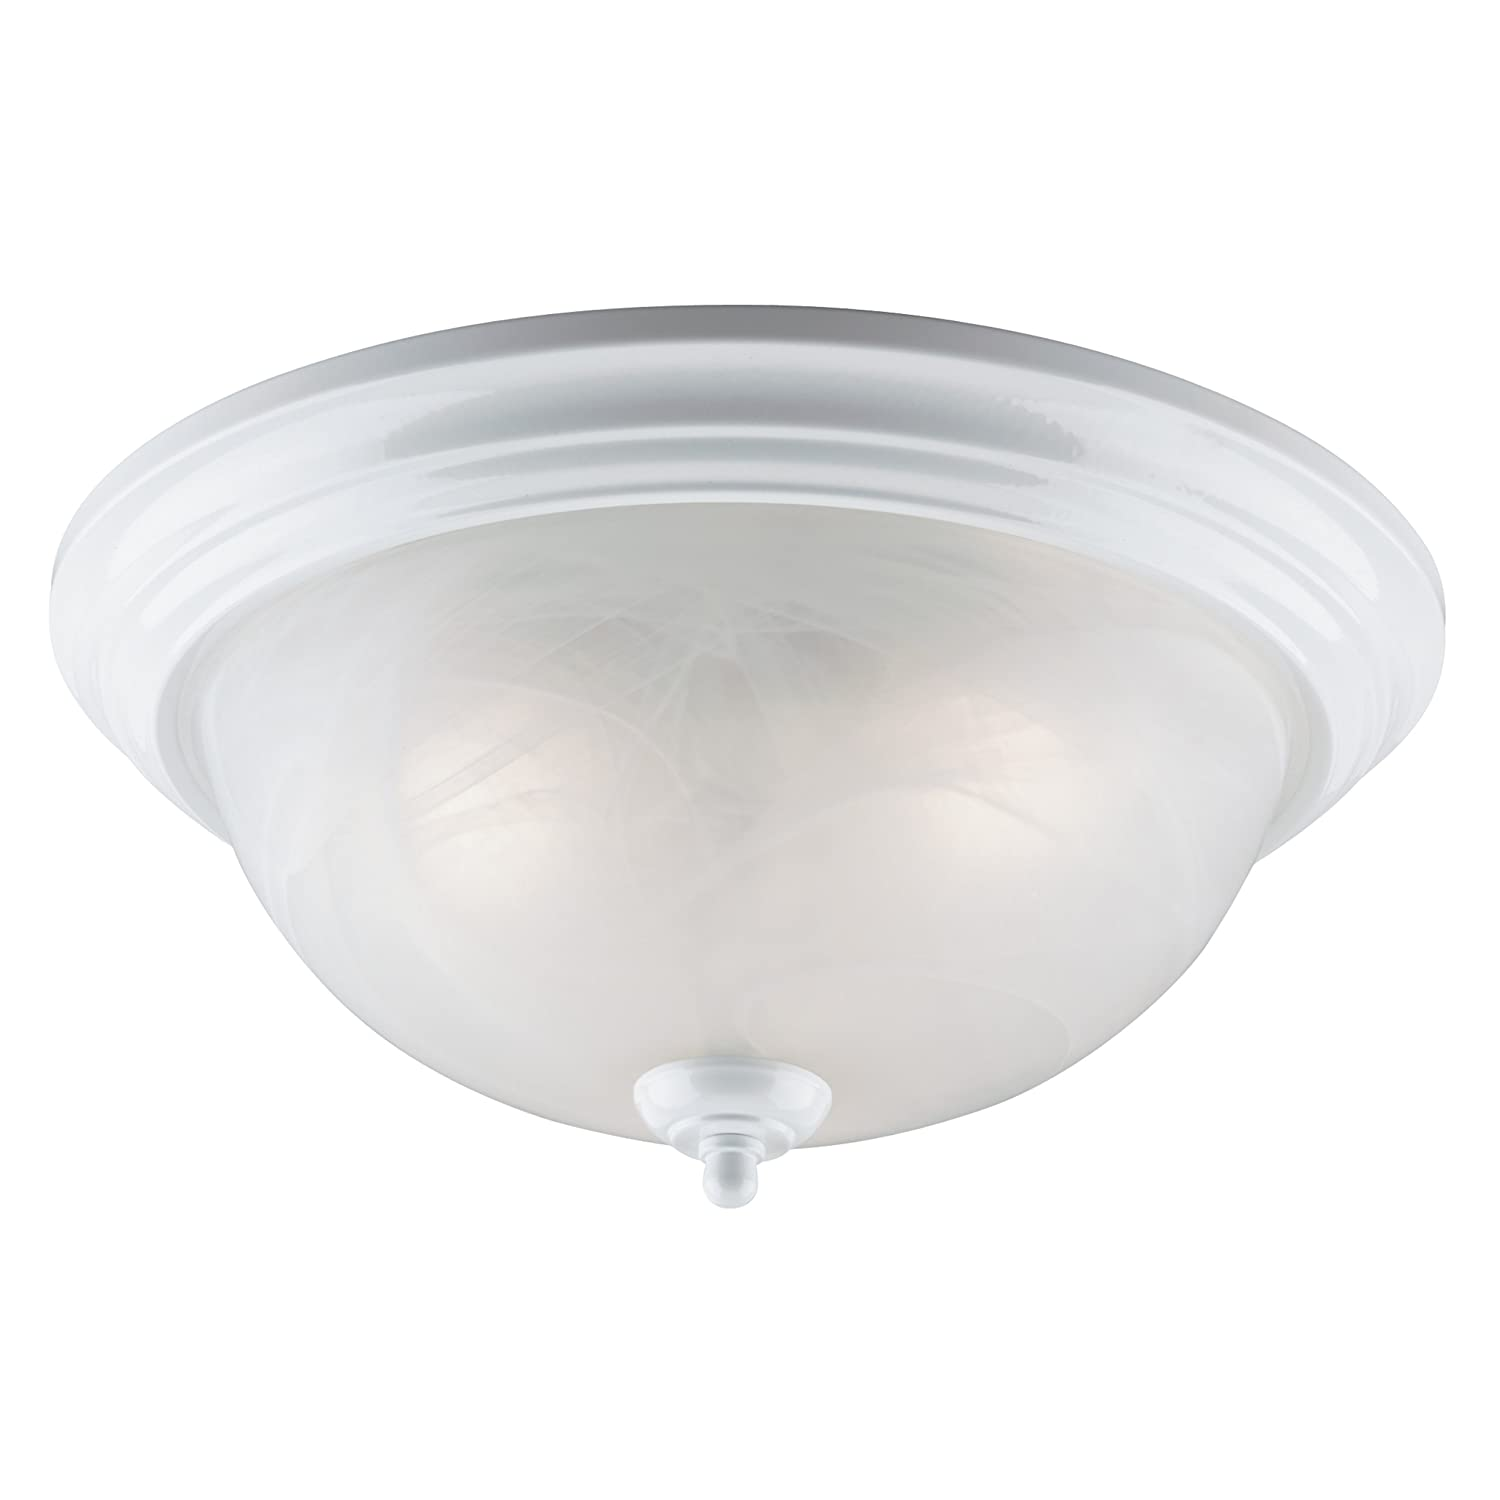 Westinghouse lighting corp 3 light ceiling fixture white